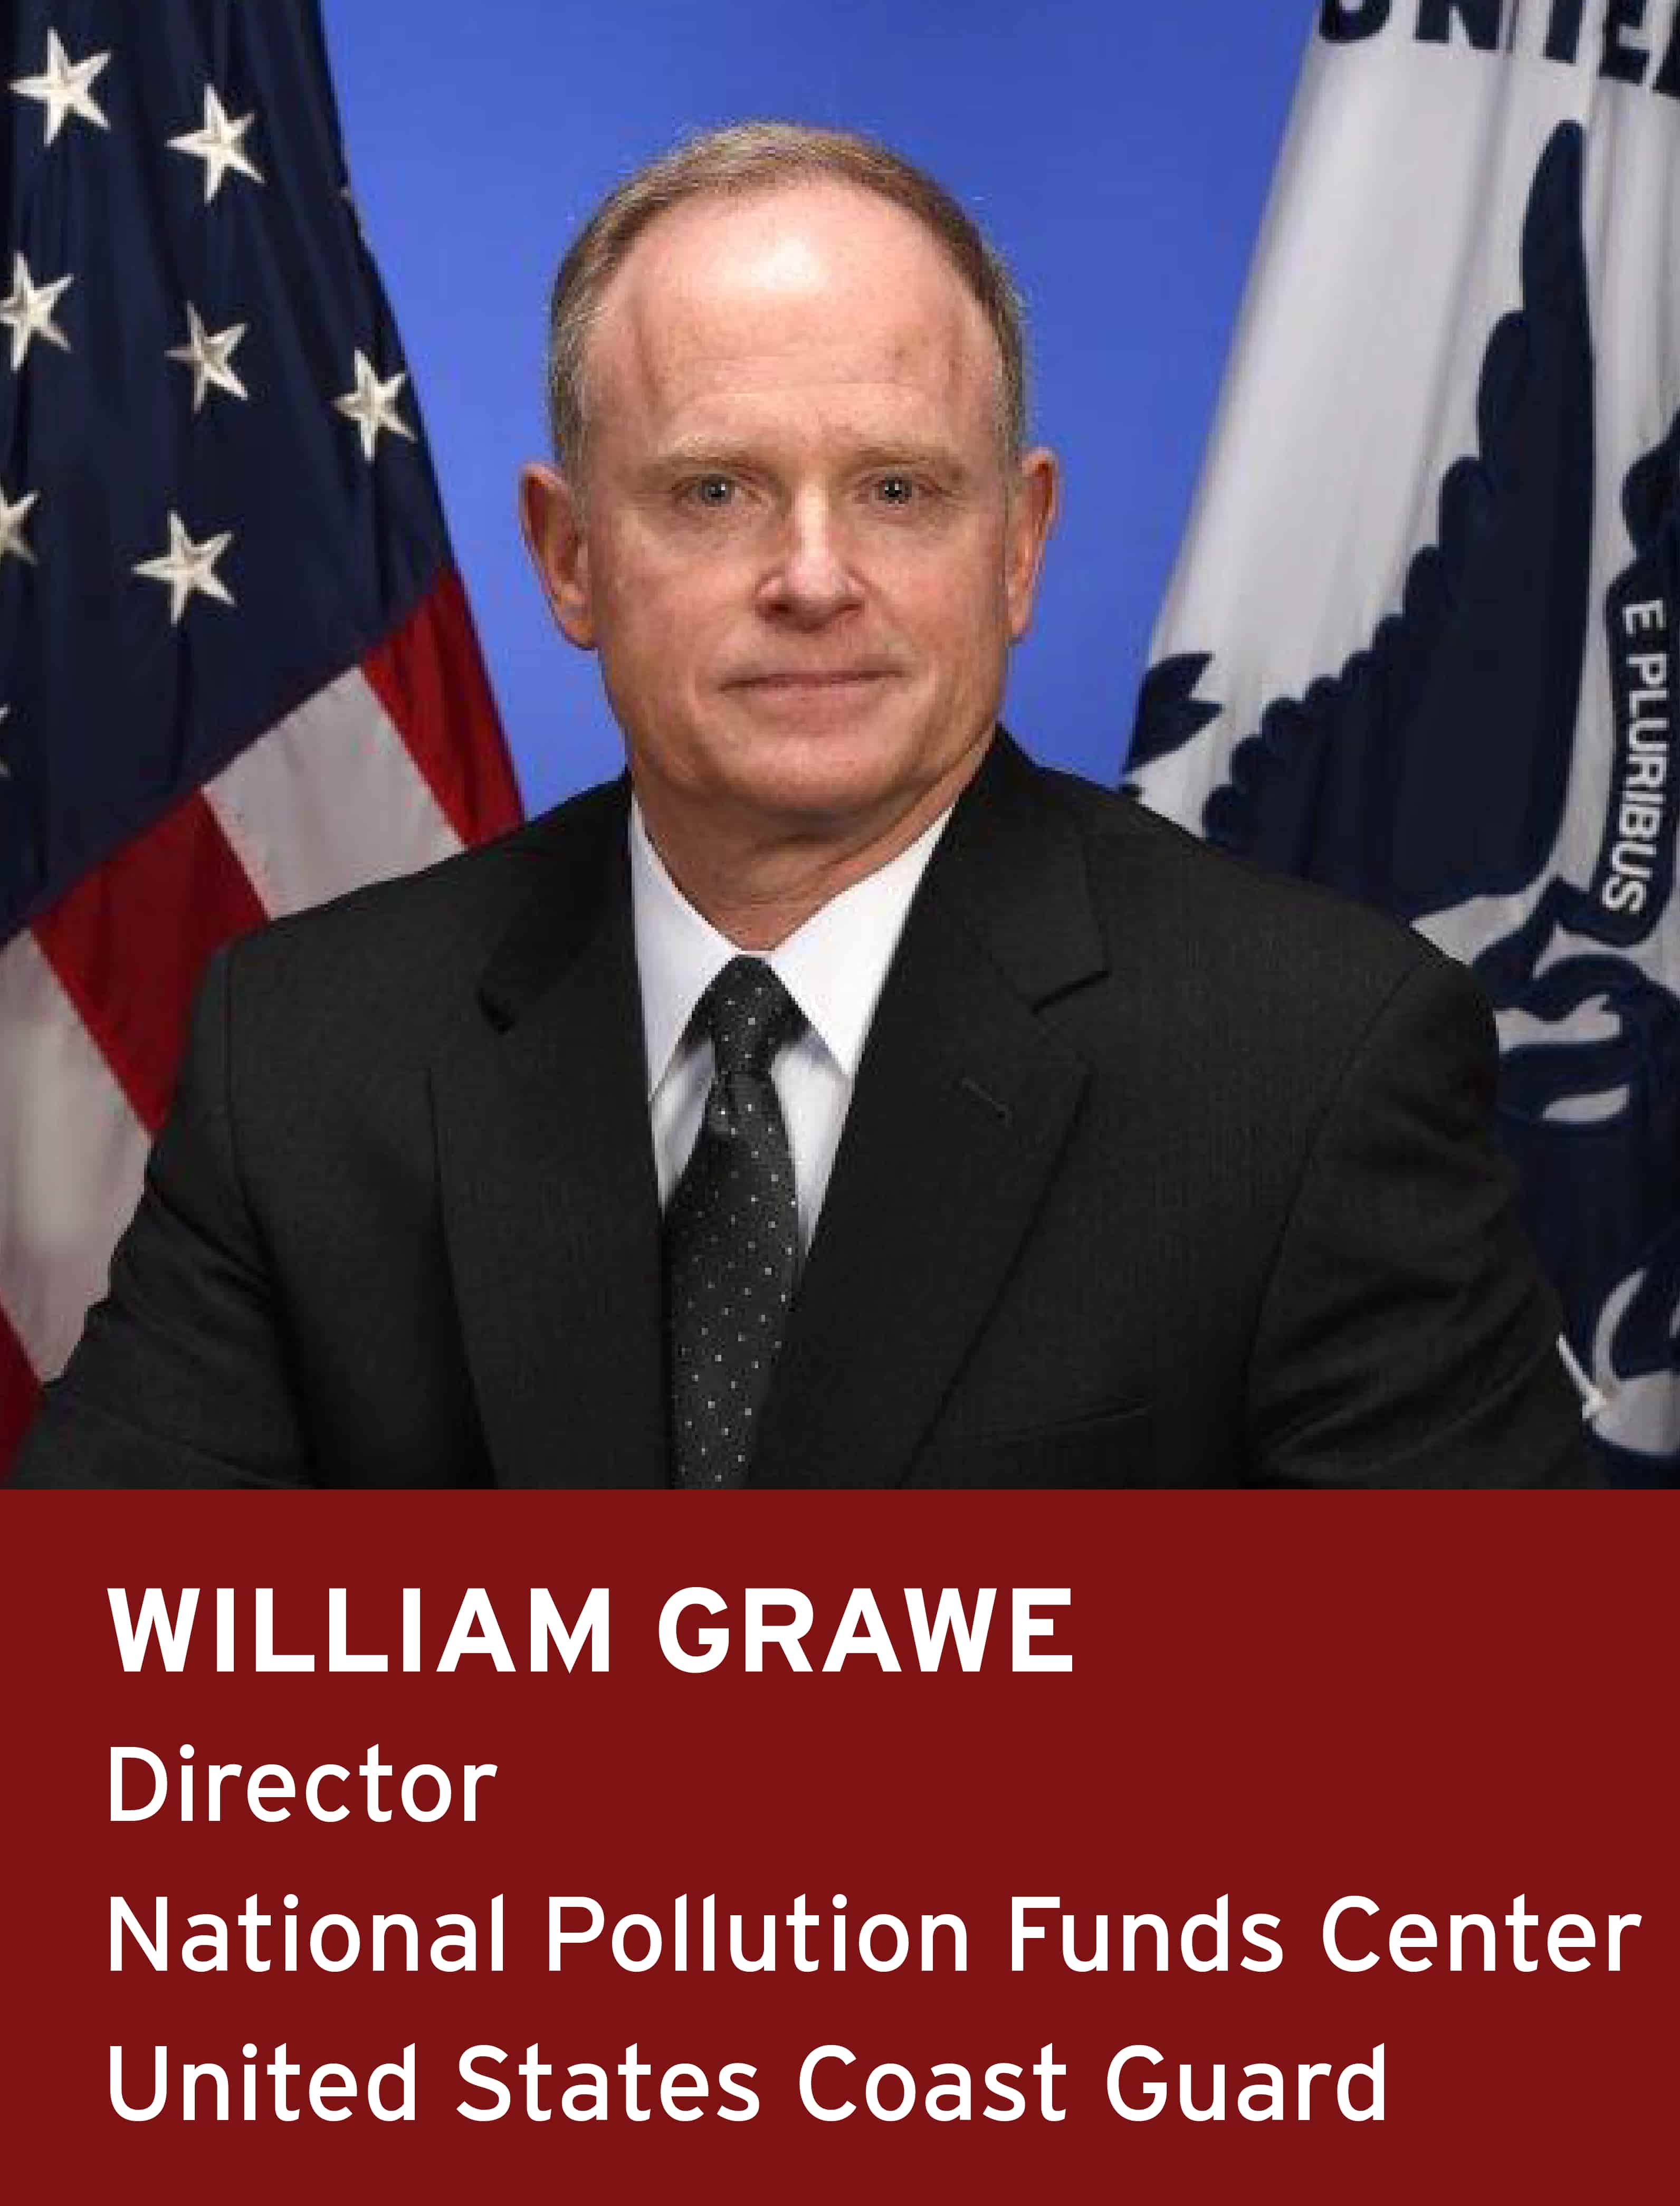 William Grawe, Director, National Pollution Funds Center, US Coast Guard